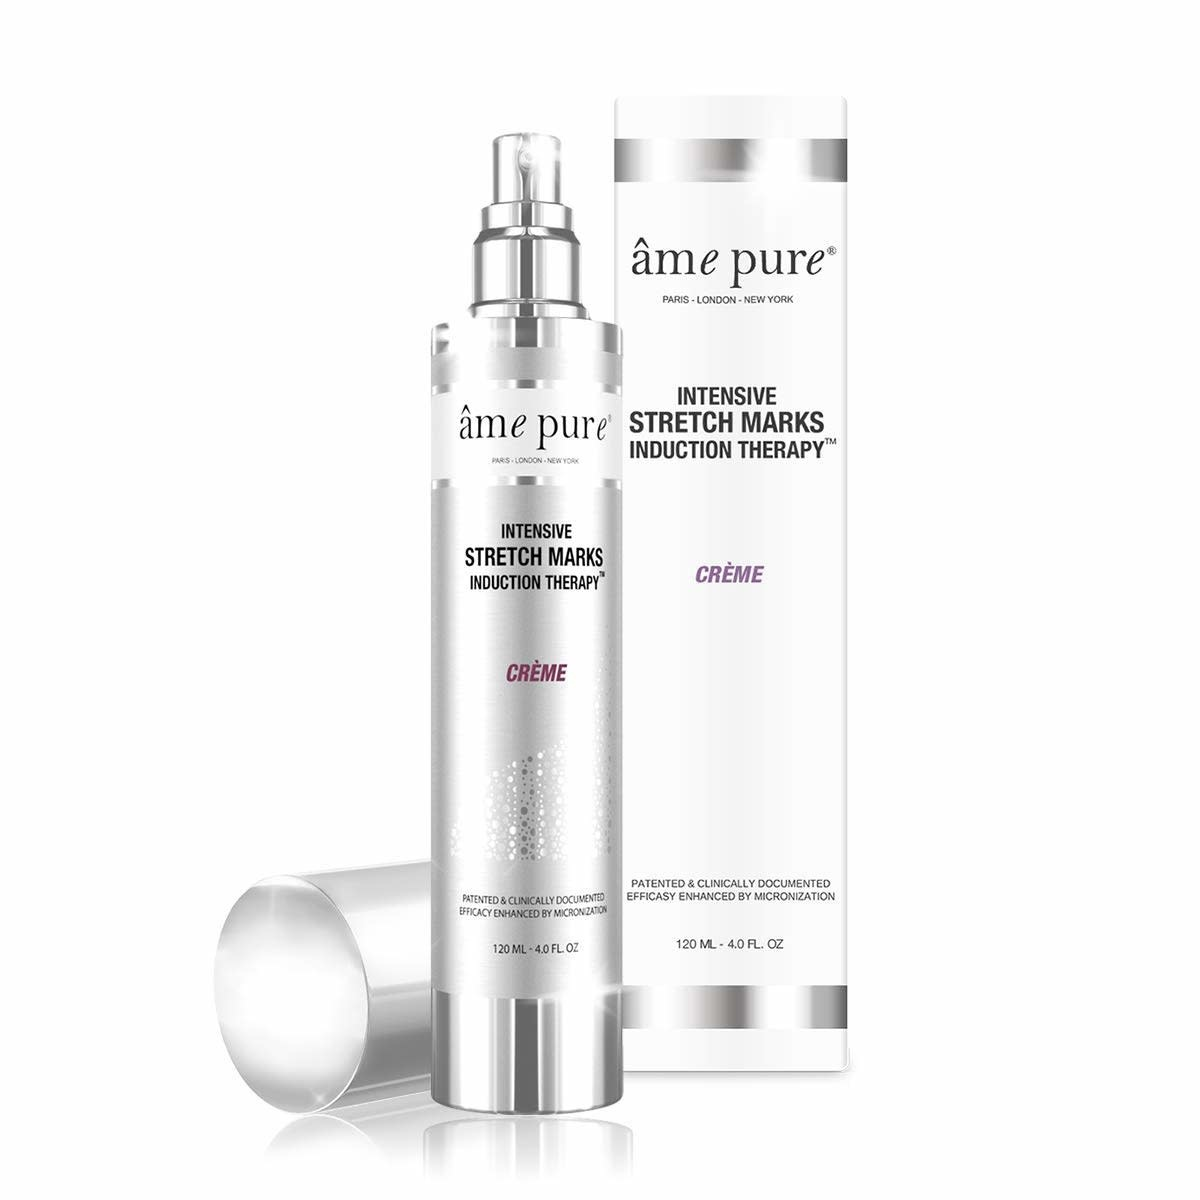 AME PURE AME PURE INTENSIVE STRETCH MARKS INDUCTION THERAPY CRÈME 120ML - KEM DƯỠNG THỂ GIẢM RẠN NỨT DA